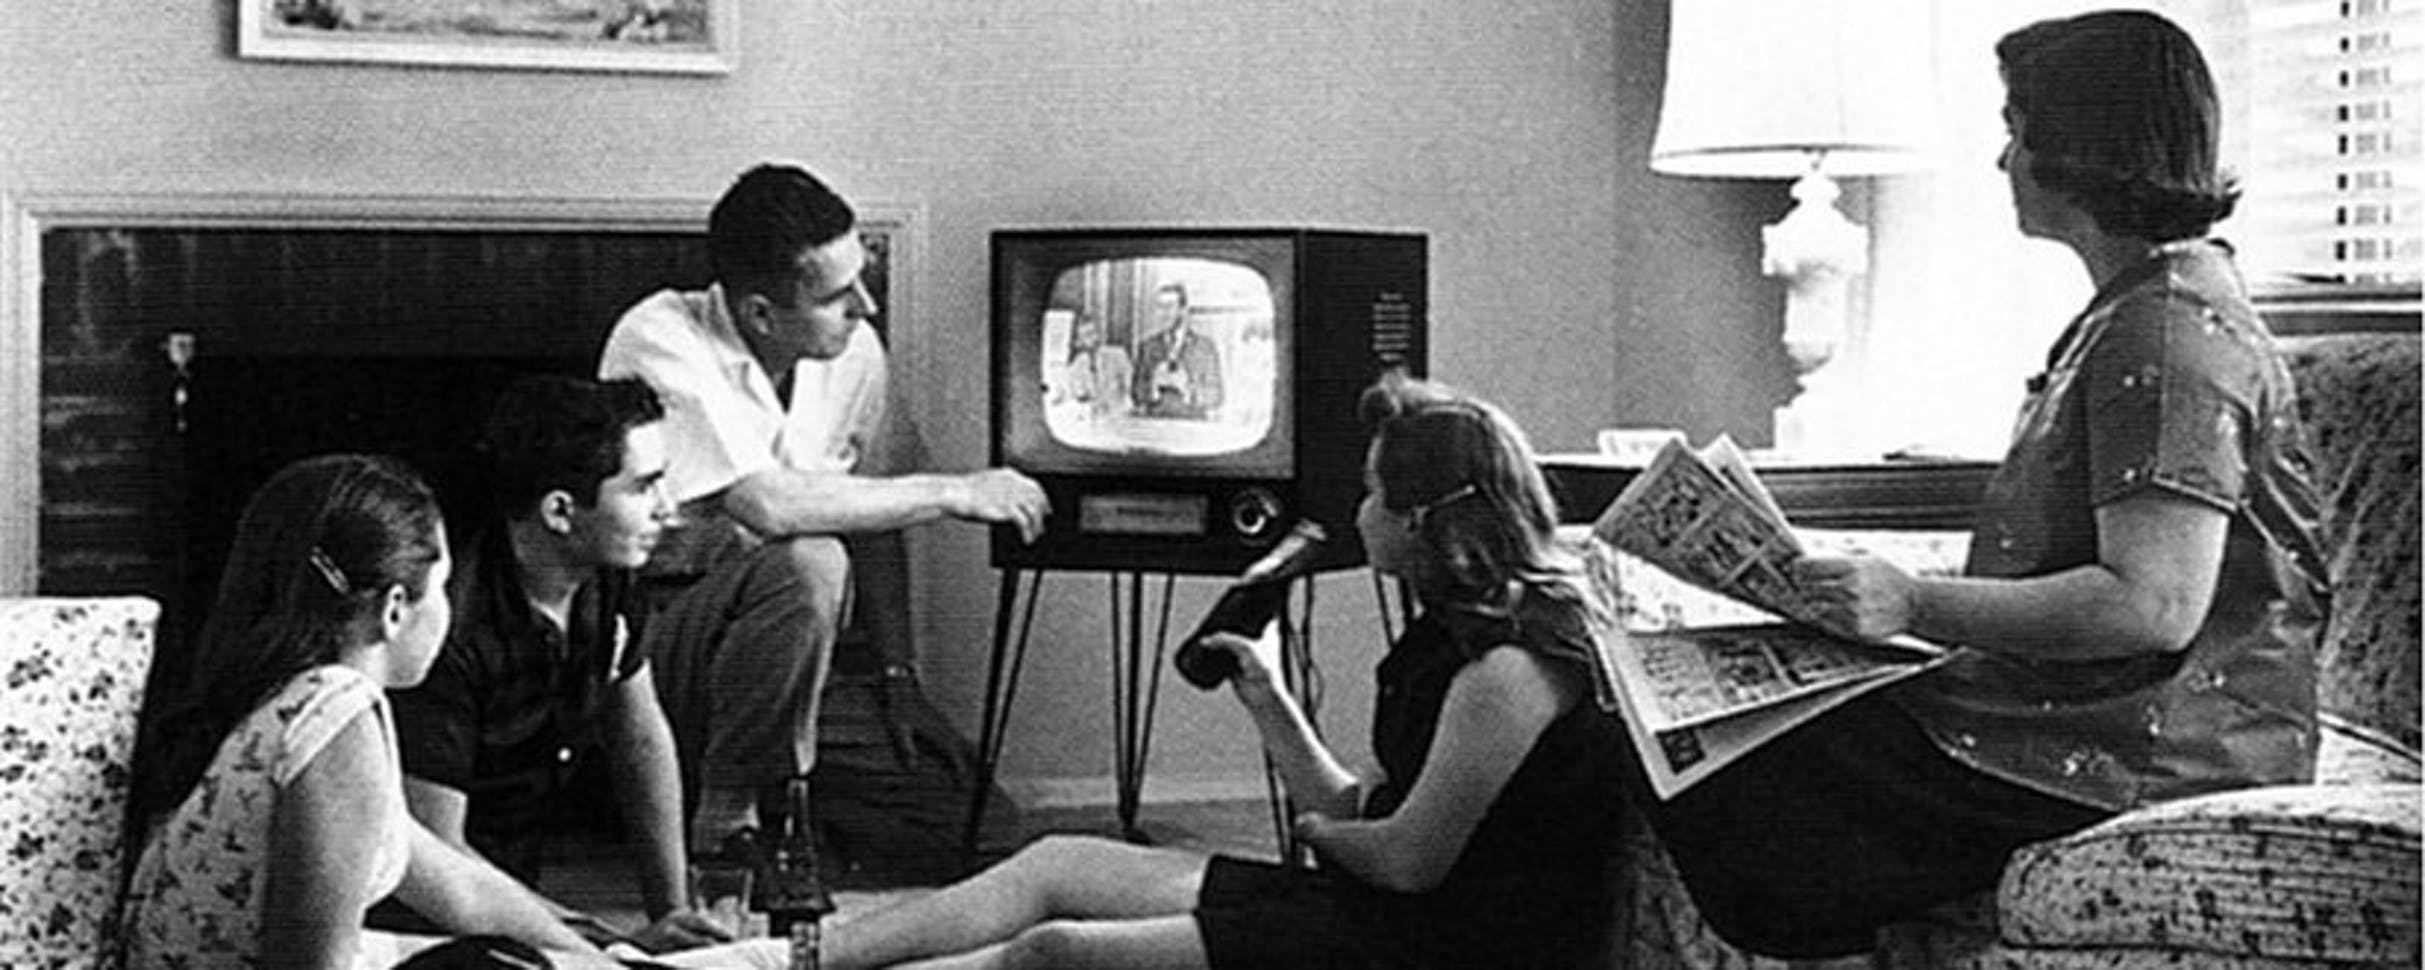 Photo of a family gathered around an old black and white television set.